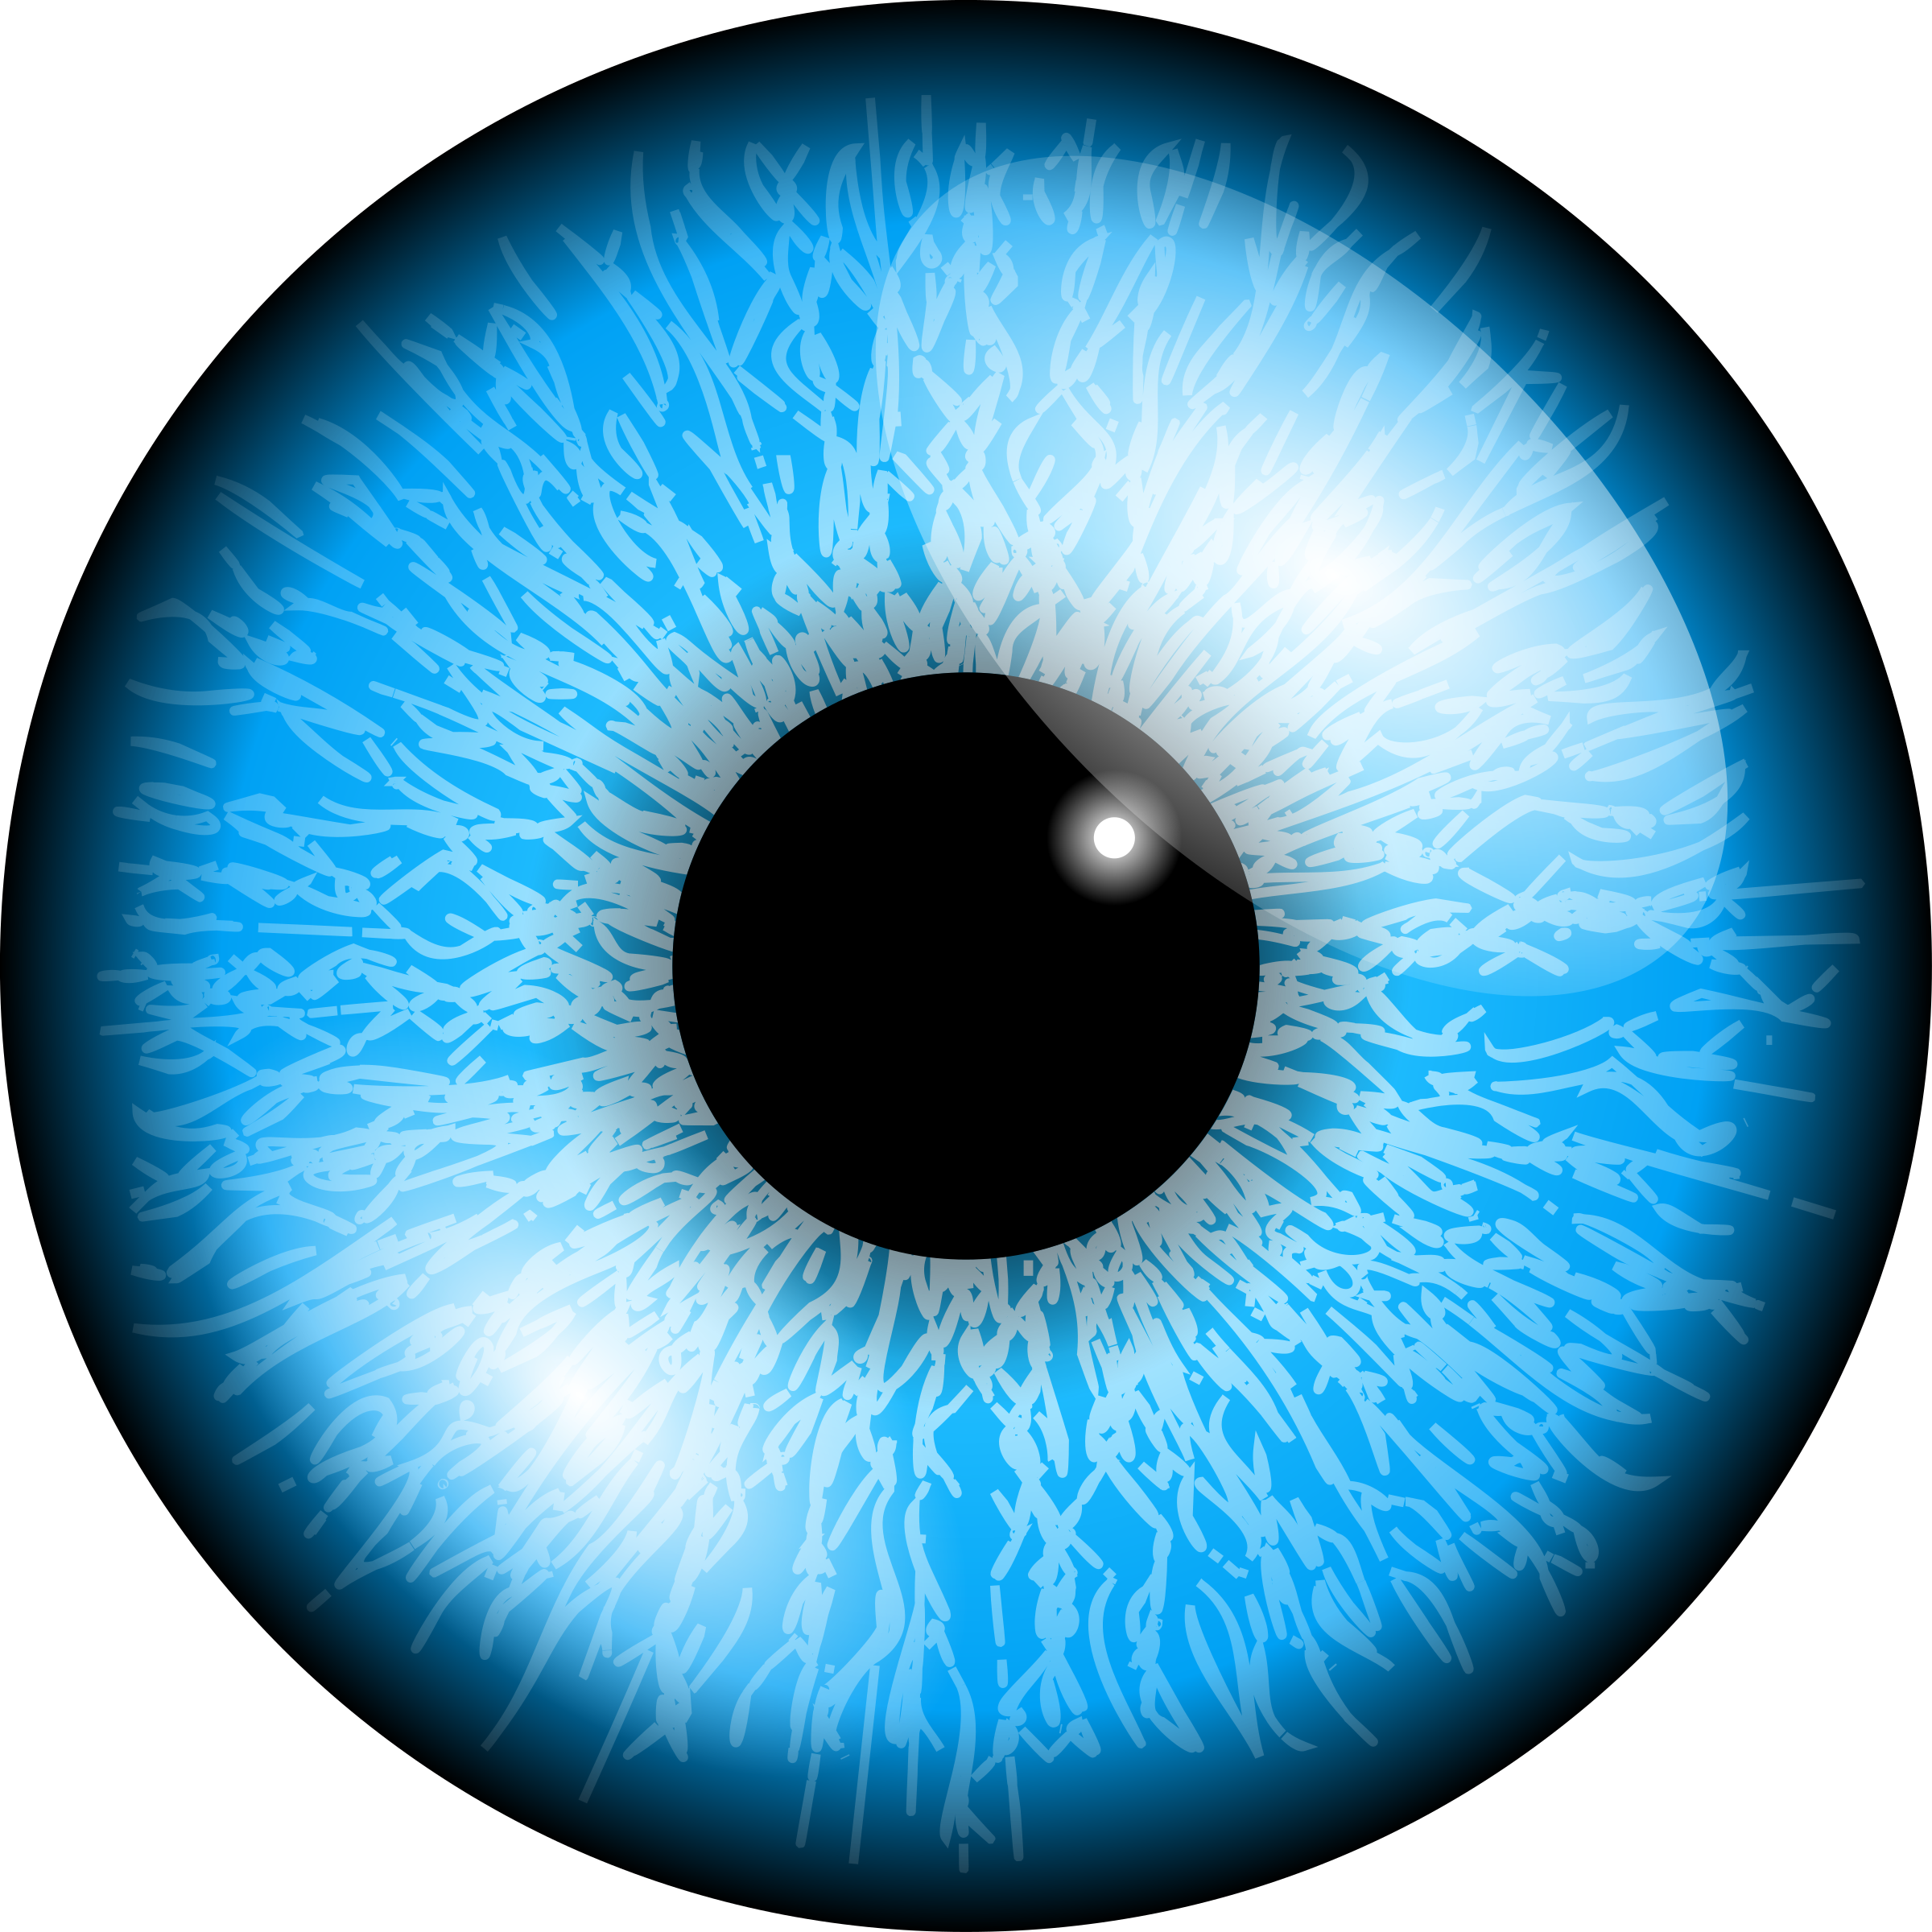 Eye akis big image. Clipart eyes blue